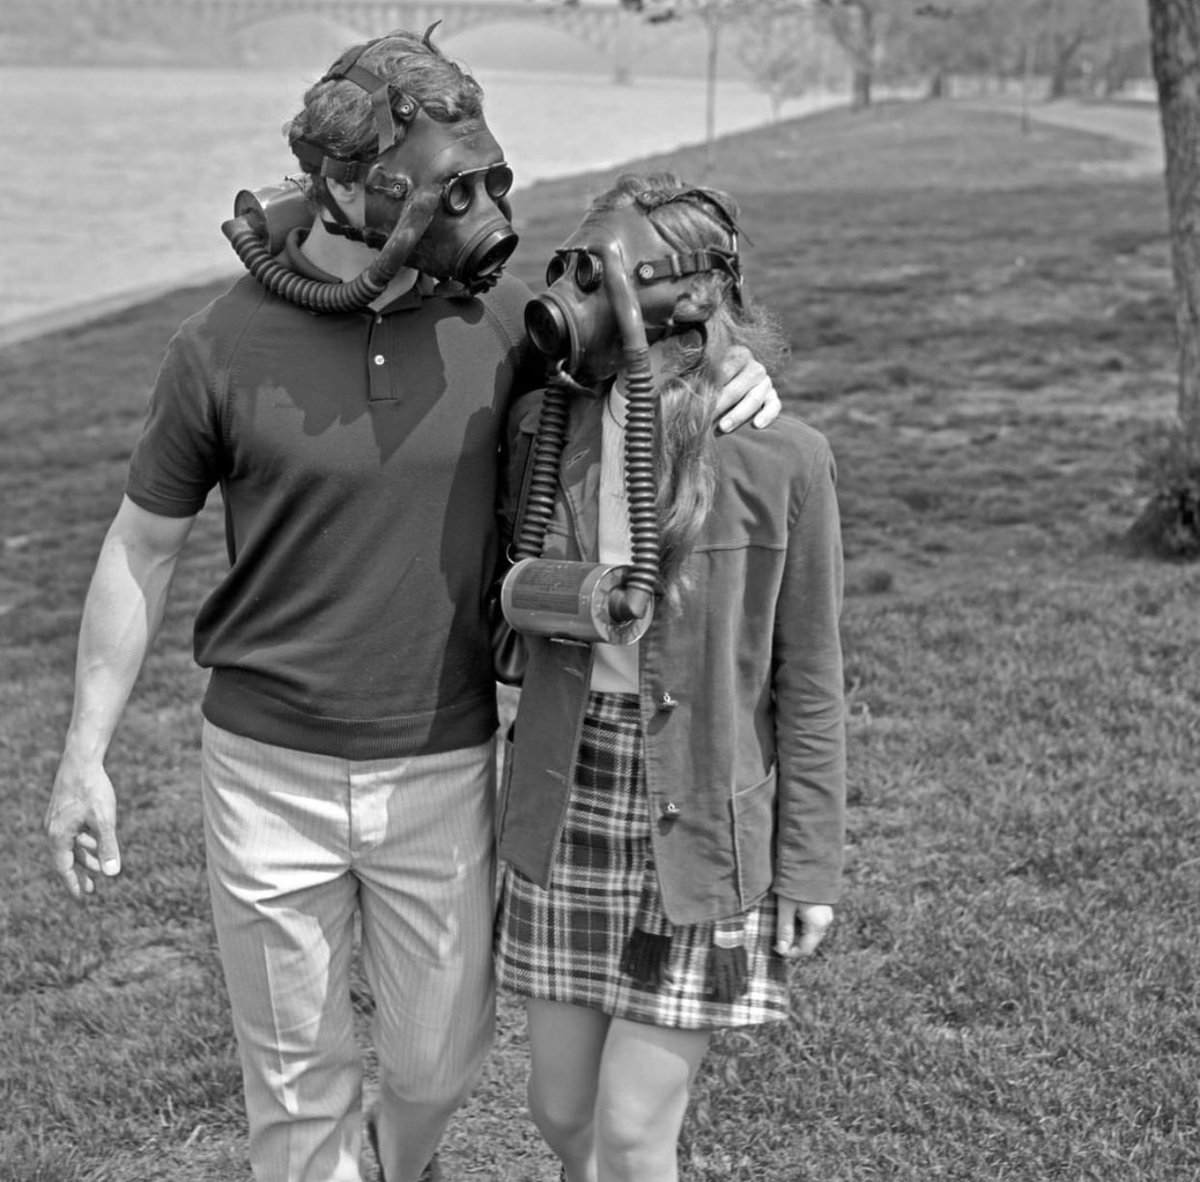 A couple making a point about smog and the environment. 1970, Photo by H. Armstrong⠀